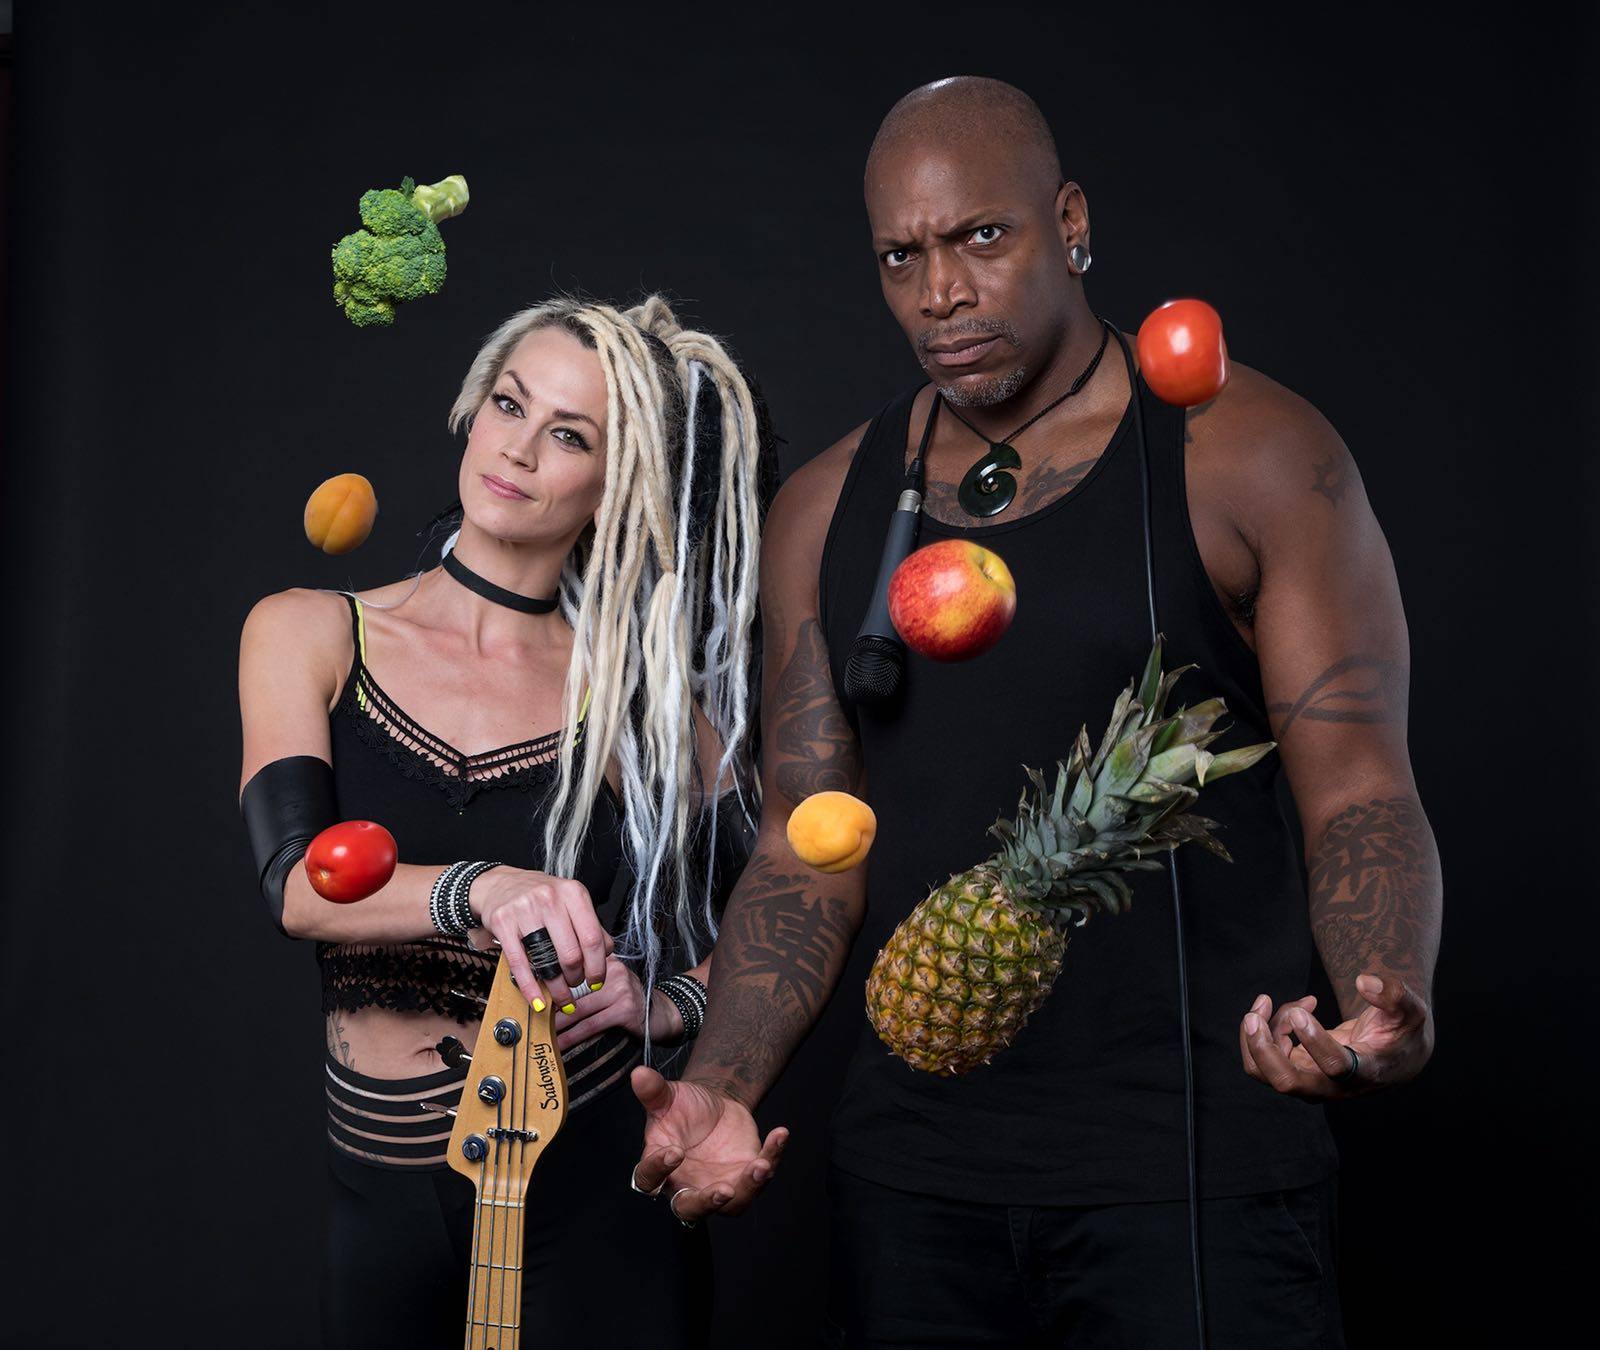 Tanya O'Callaghan and Derrick Green, Awesome Vegans